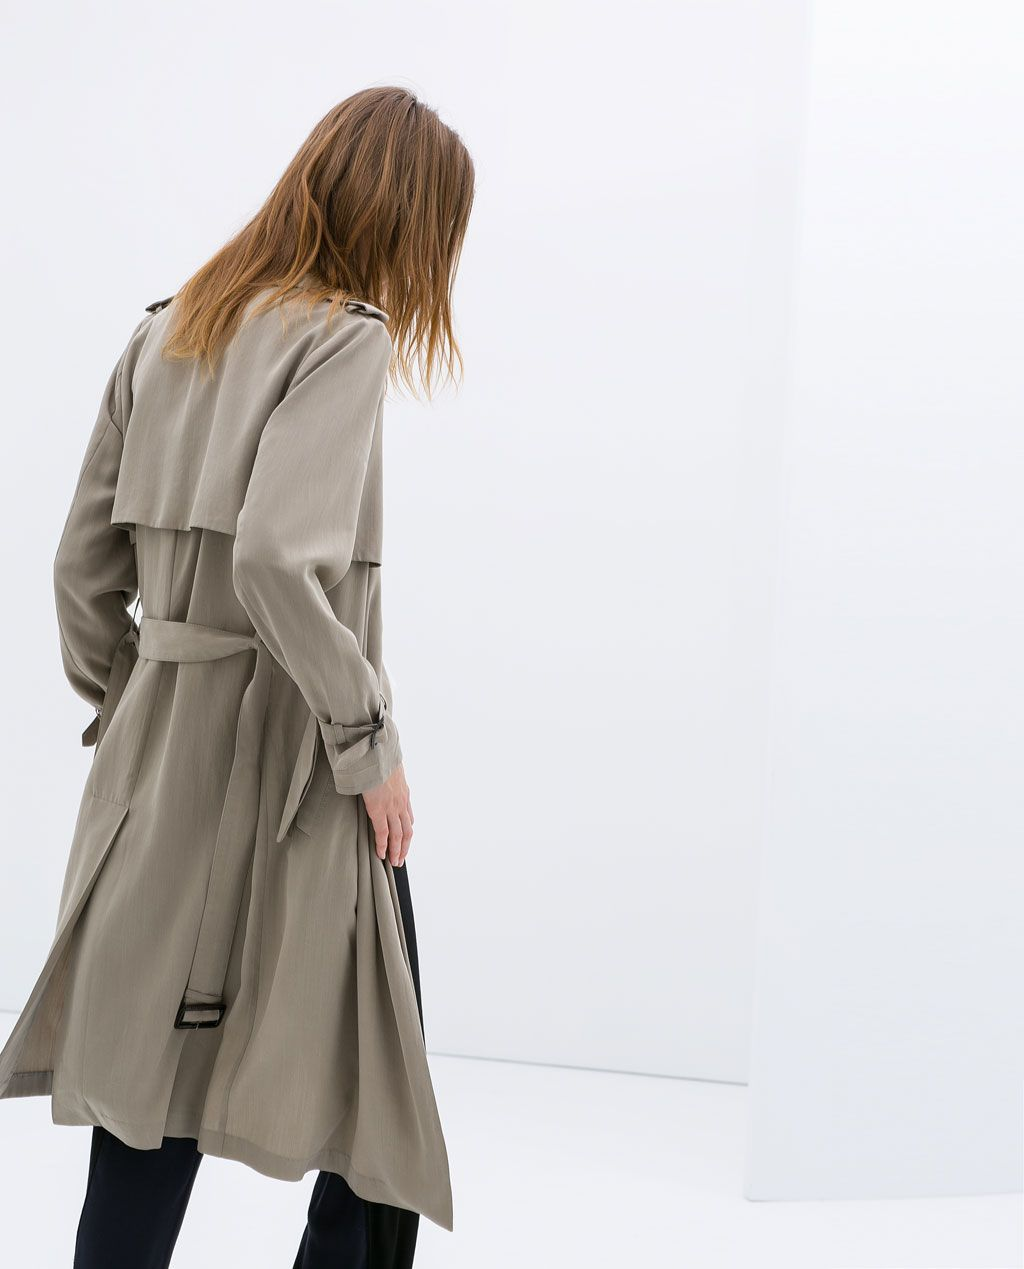 LONG FLOWING TRENCH COAT from Zara. Dress up your destroyed jeans.